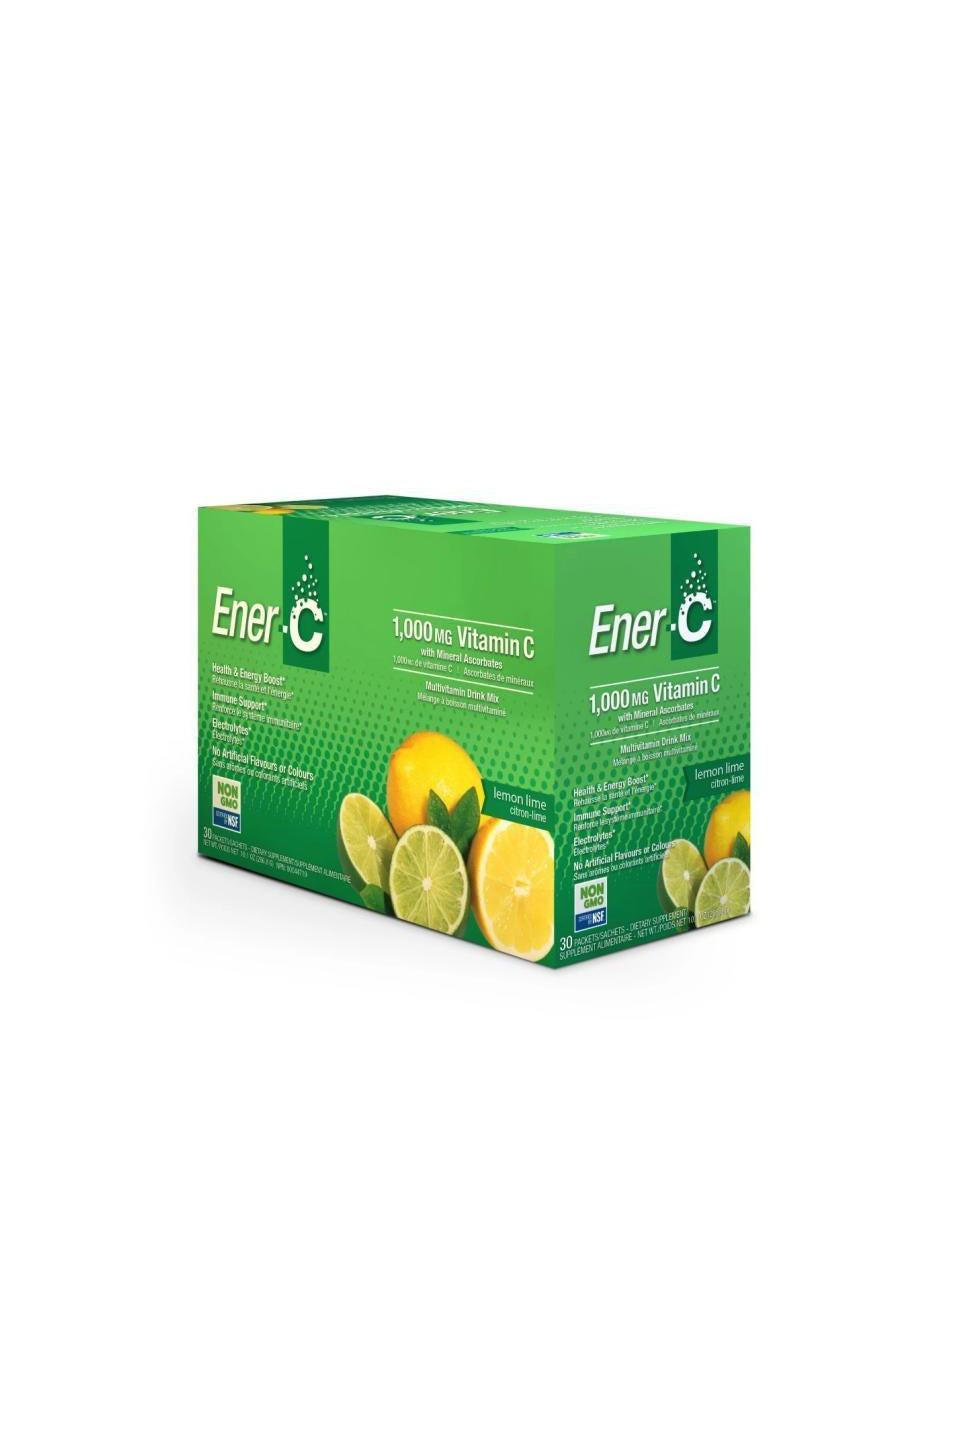 Ener-C Lemon Lime Multivitamin Drink Mix - 1,000mg Vitamin C (Case of 30)